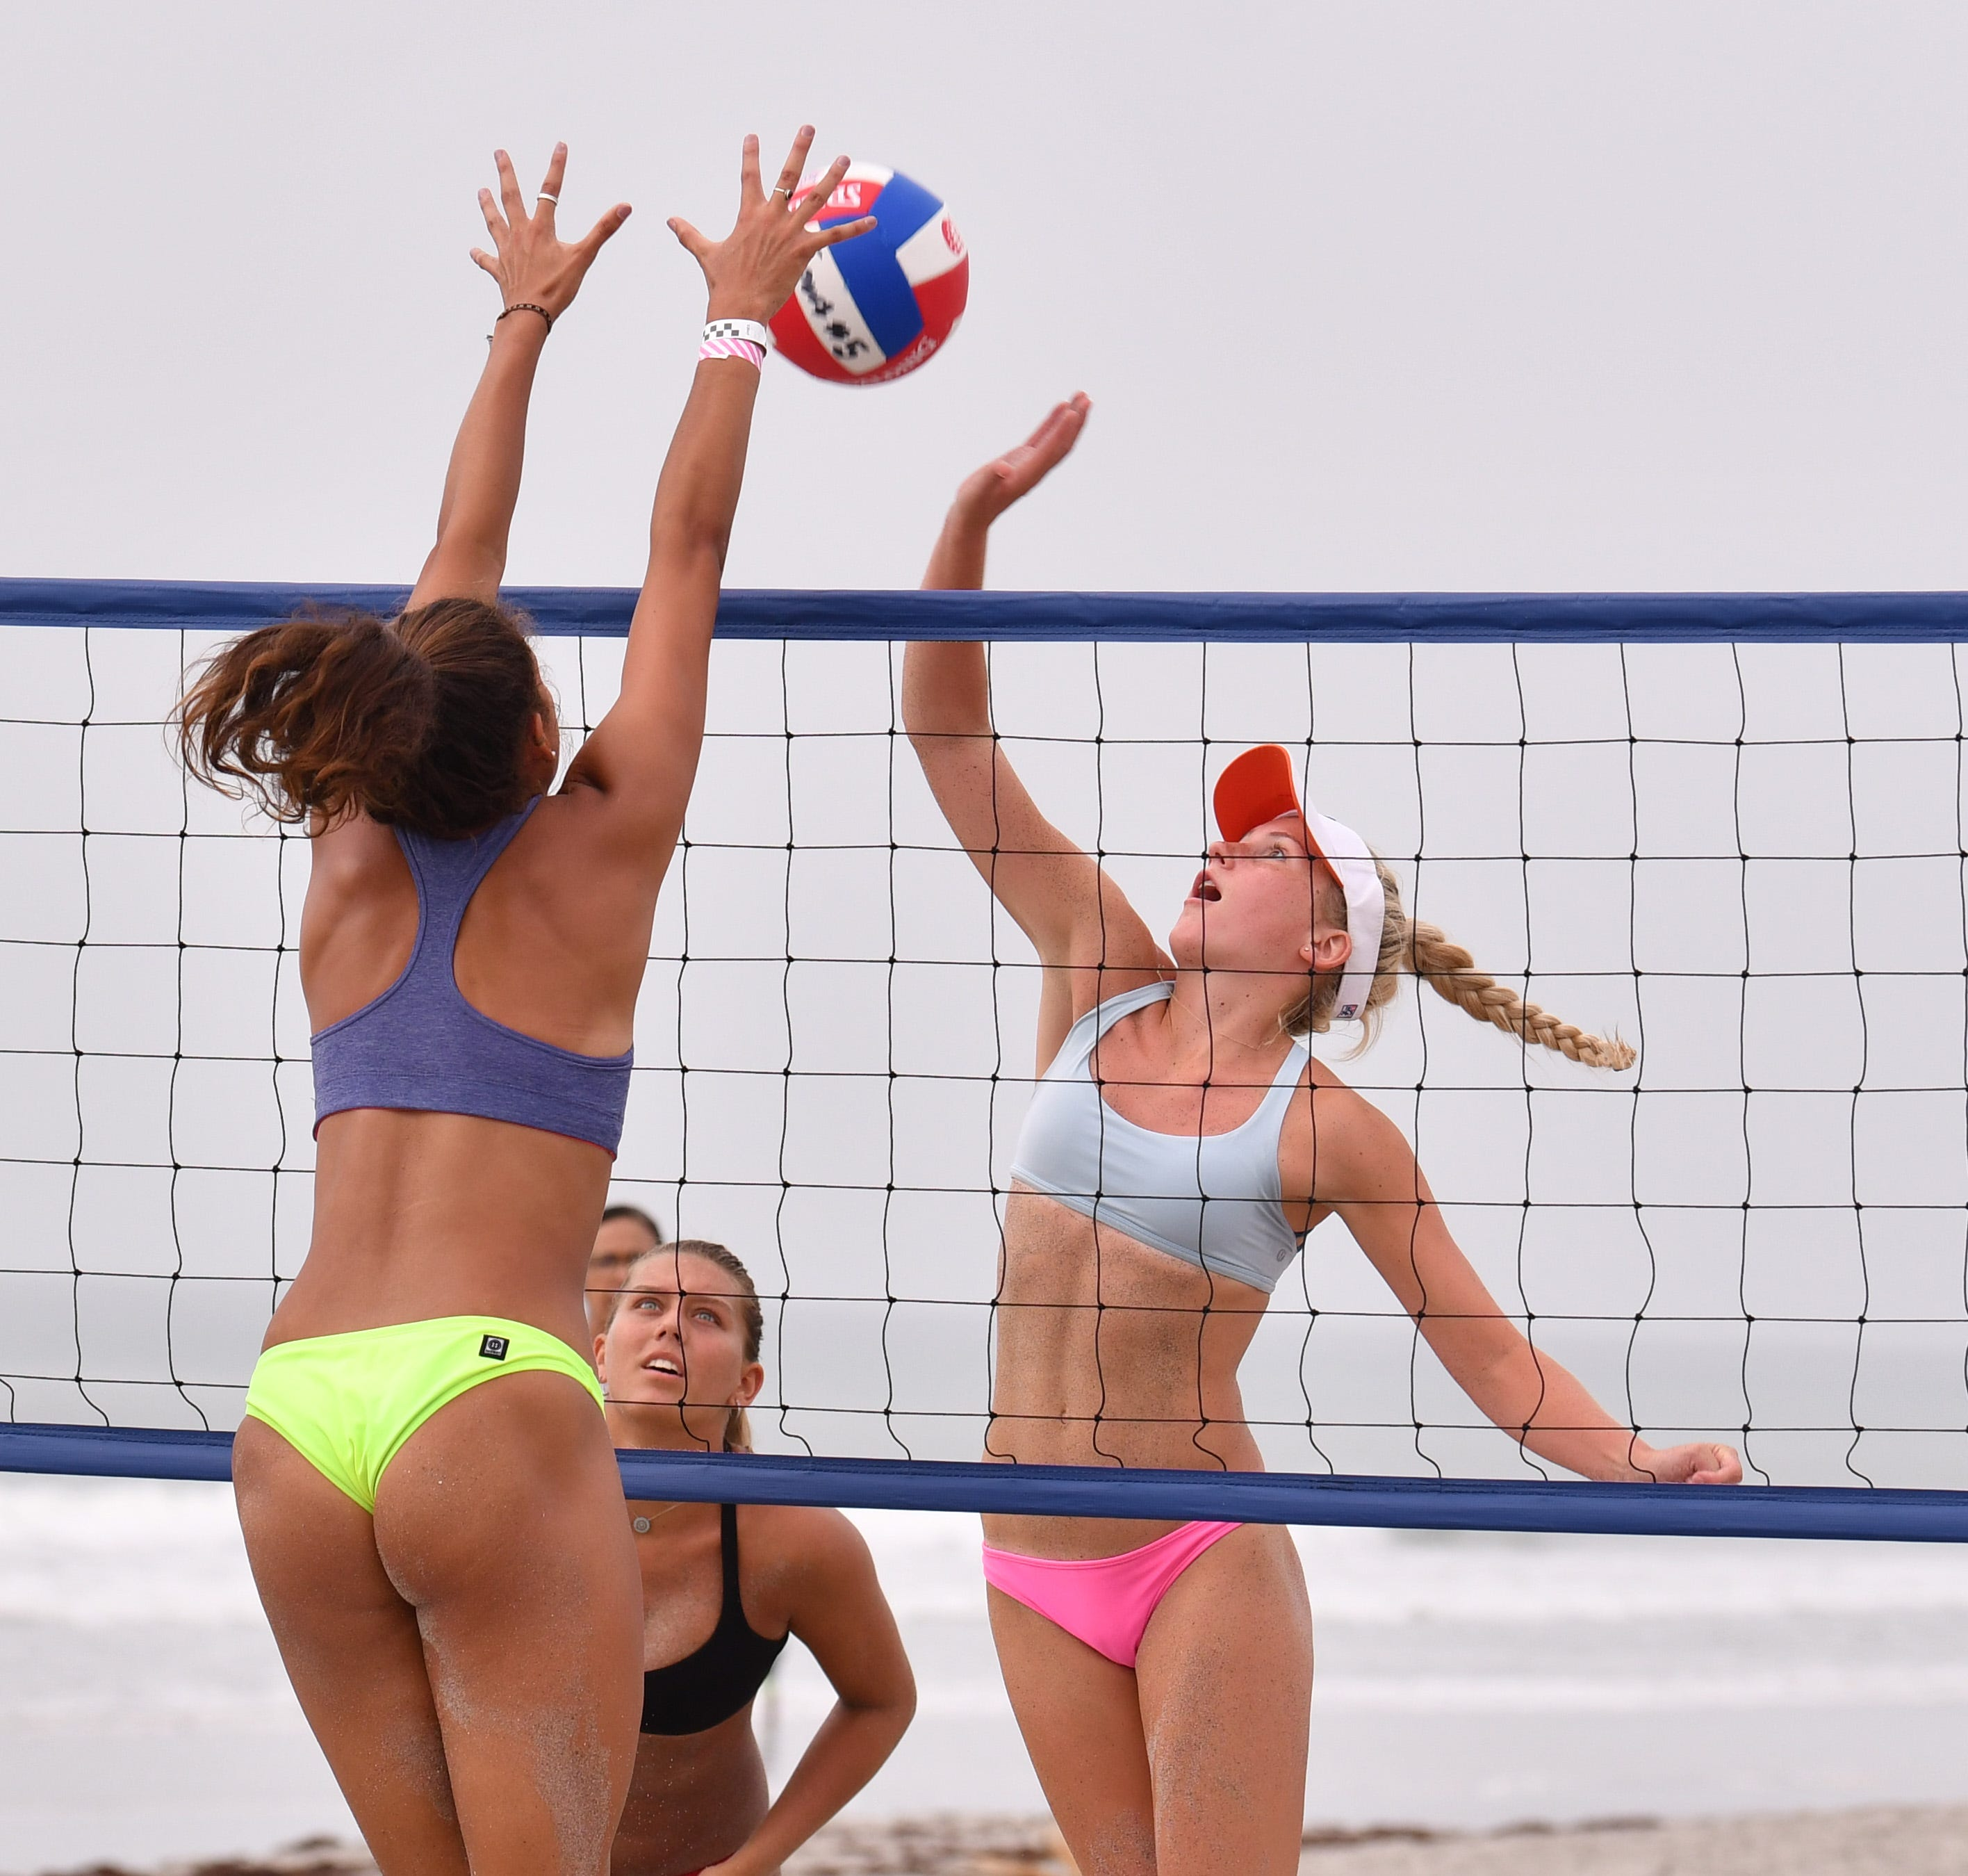 Girls Beach Volleyball Elite In Cocoa Beach For Aau Junior Olympics Competition Mims Florida